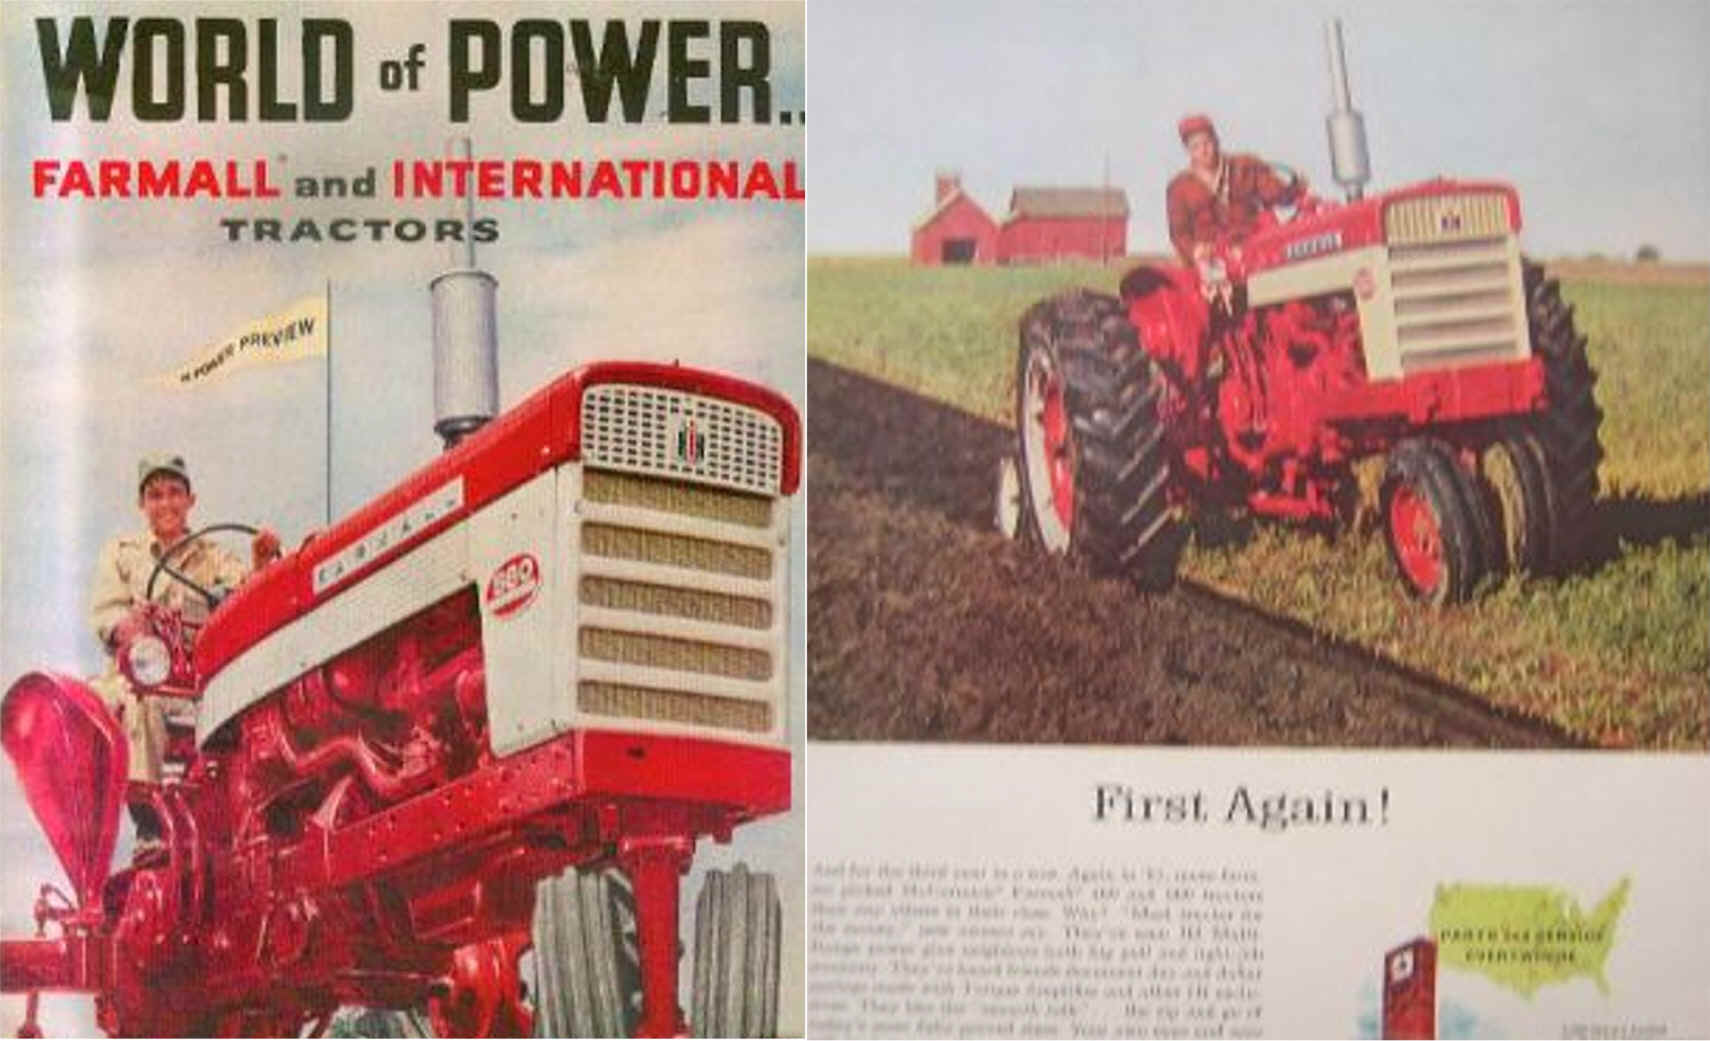 The Farmall 560 Built From 1958 1963 Tractors Were One Of Most Popular Period It Was A 5 Plow Tractor With 60 Hp